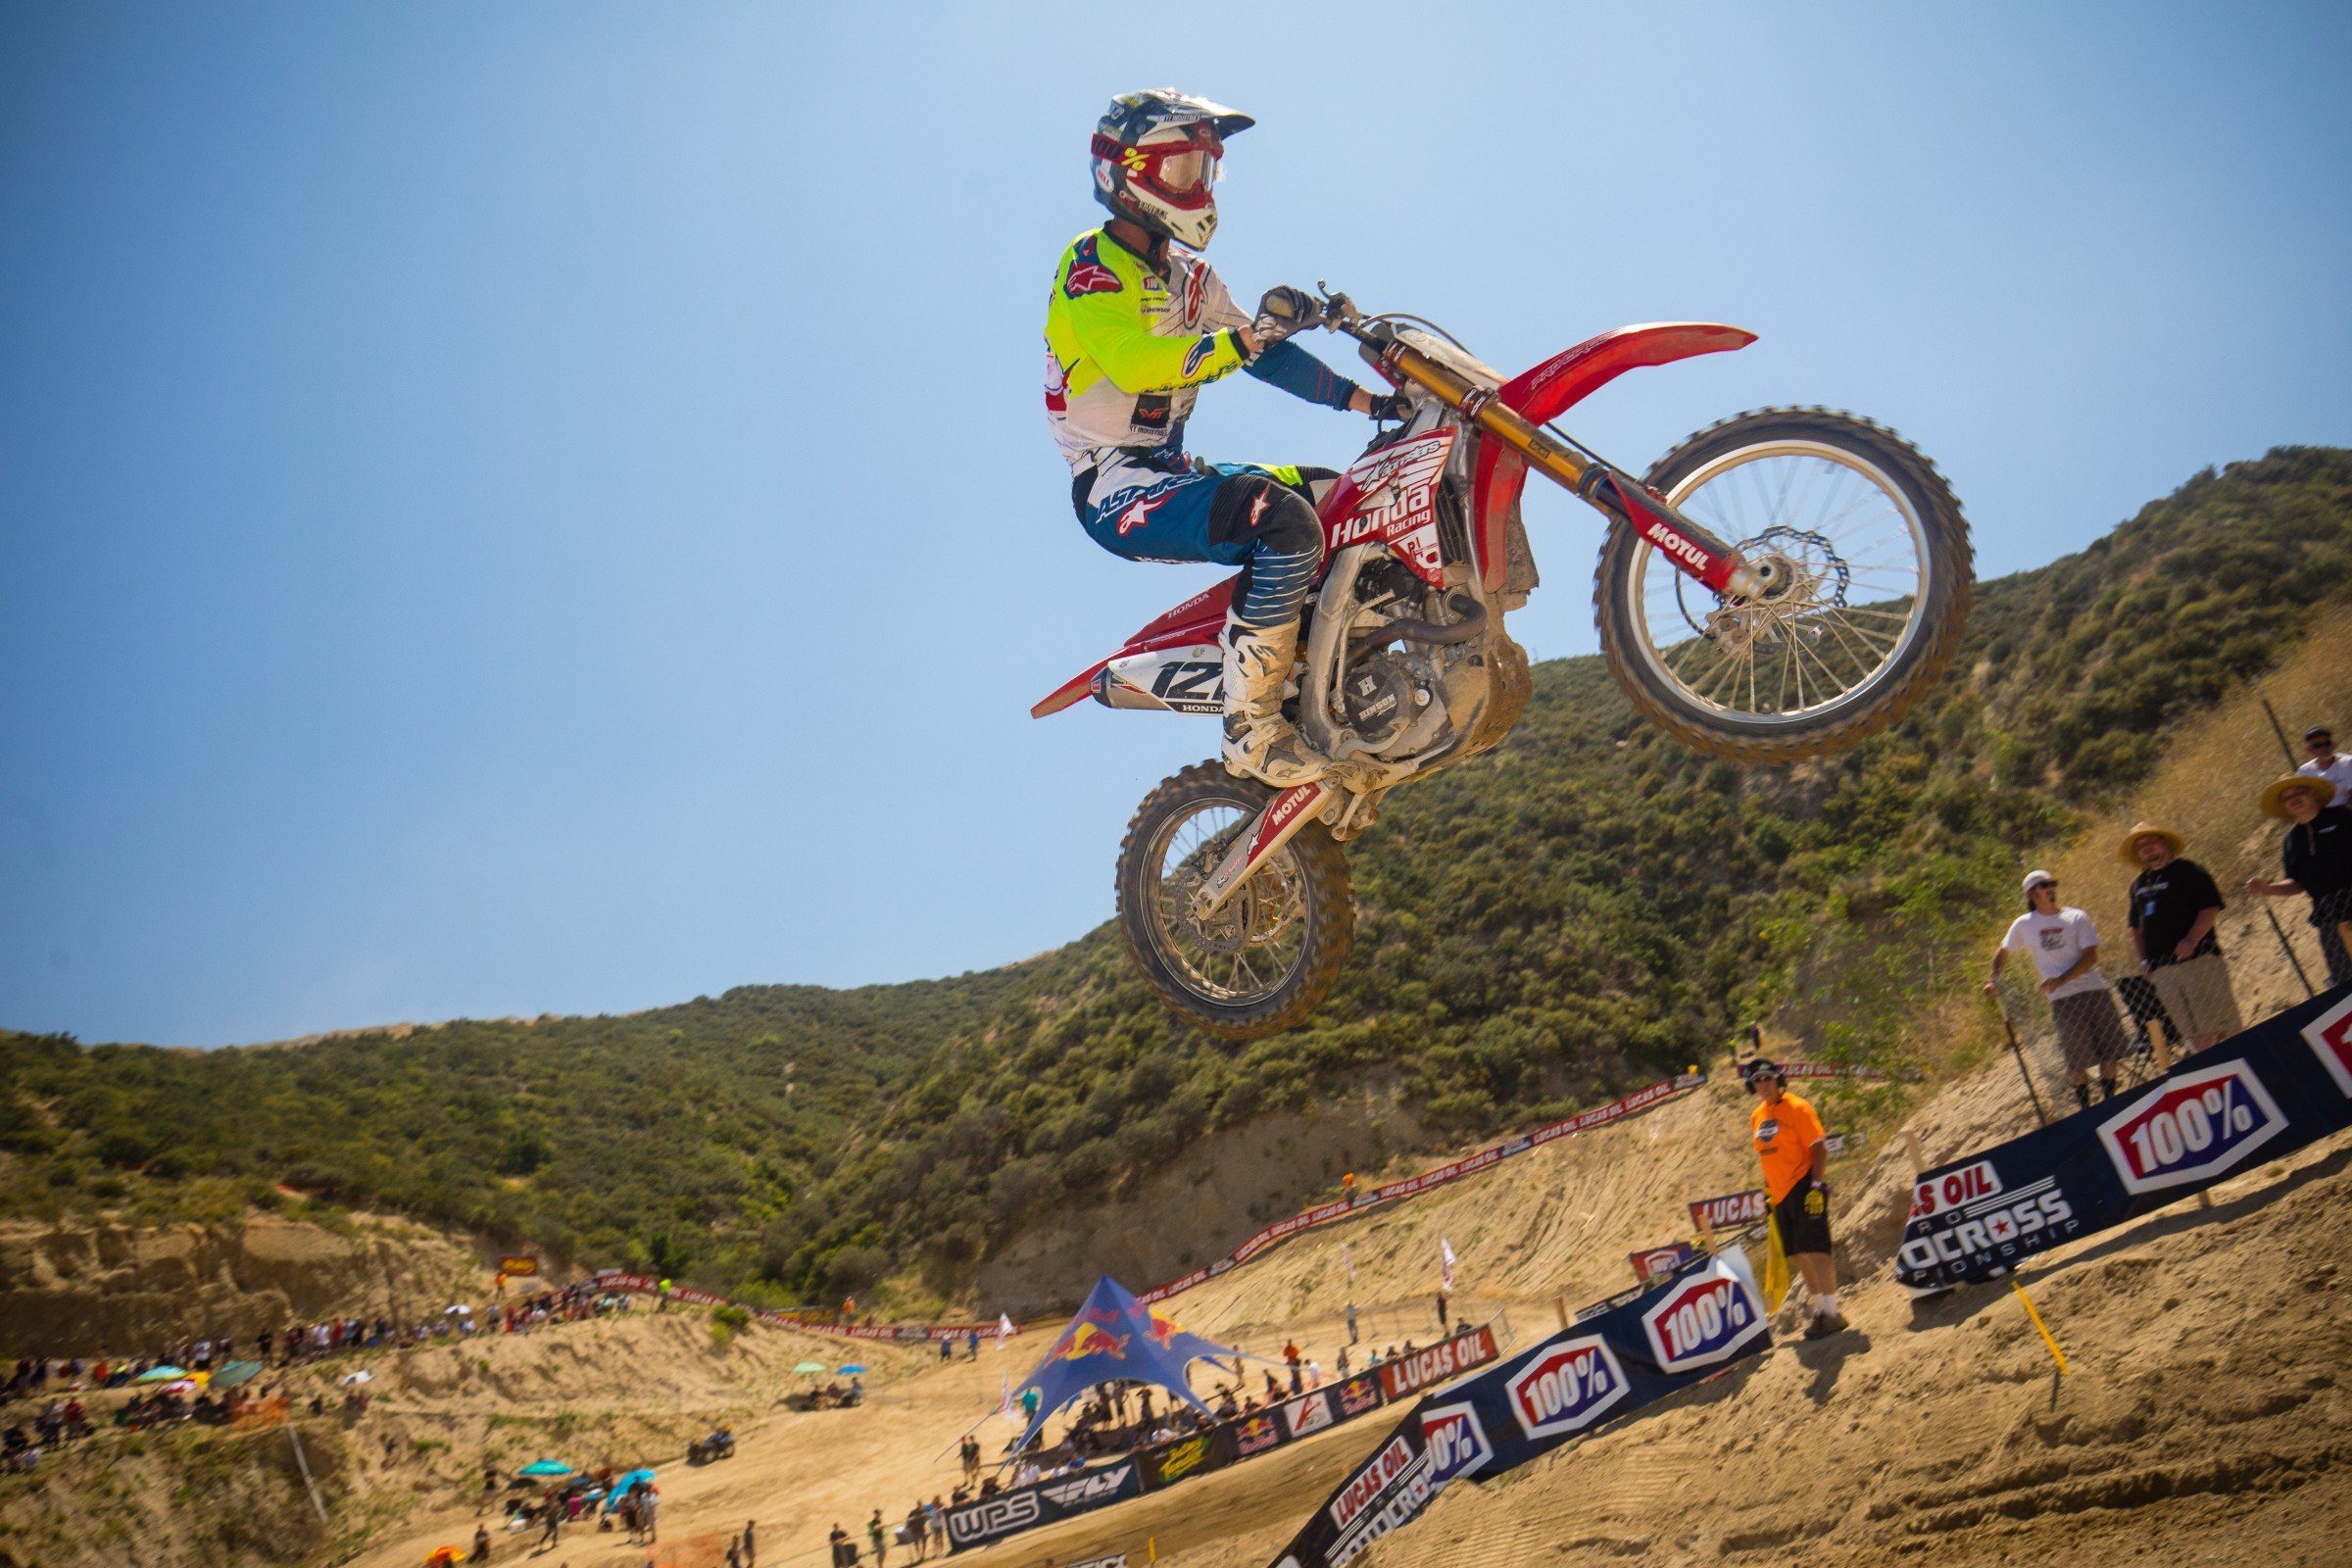 Cooper went 18-22 overall at Hangtown and Glen Helen this year.